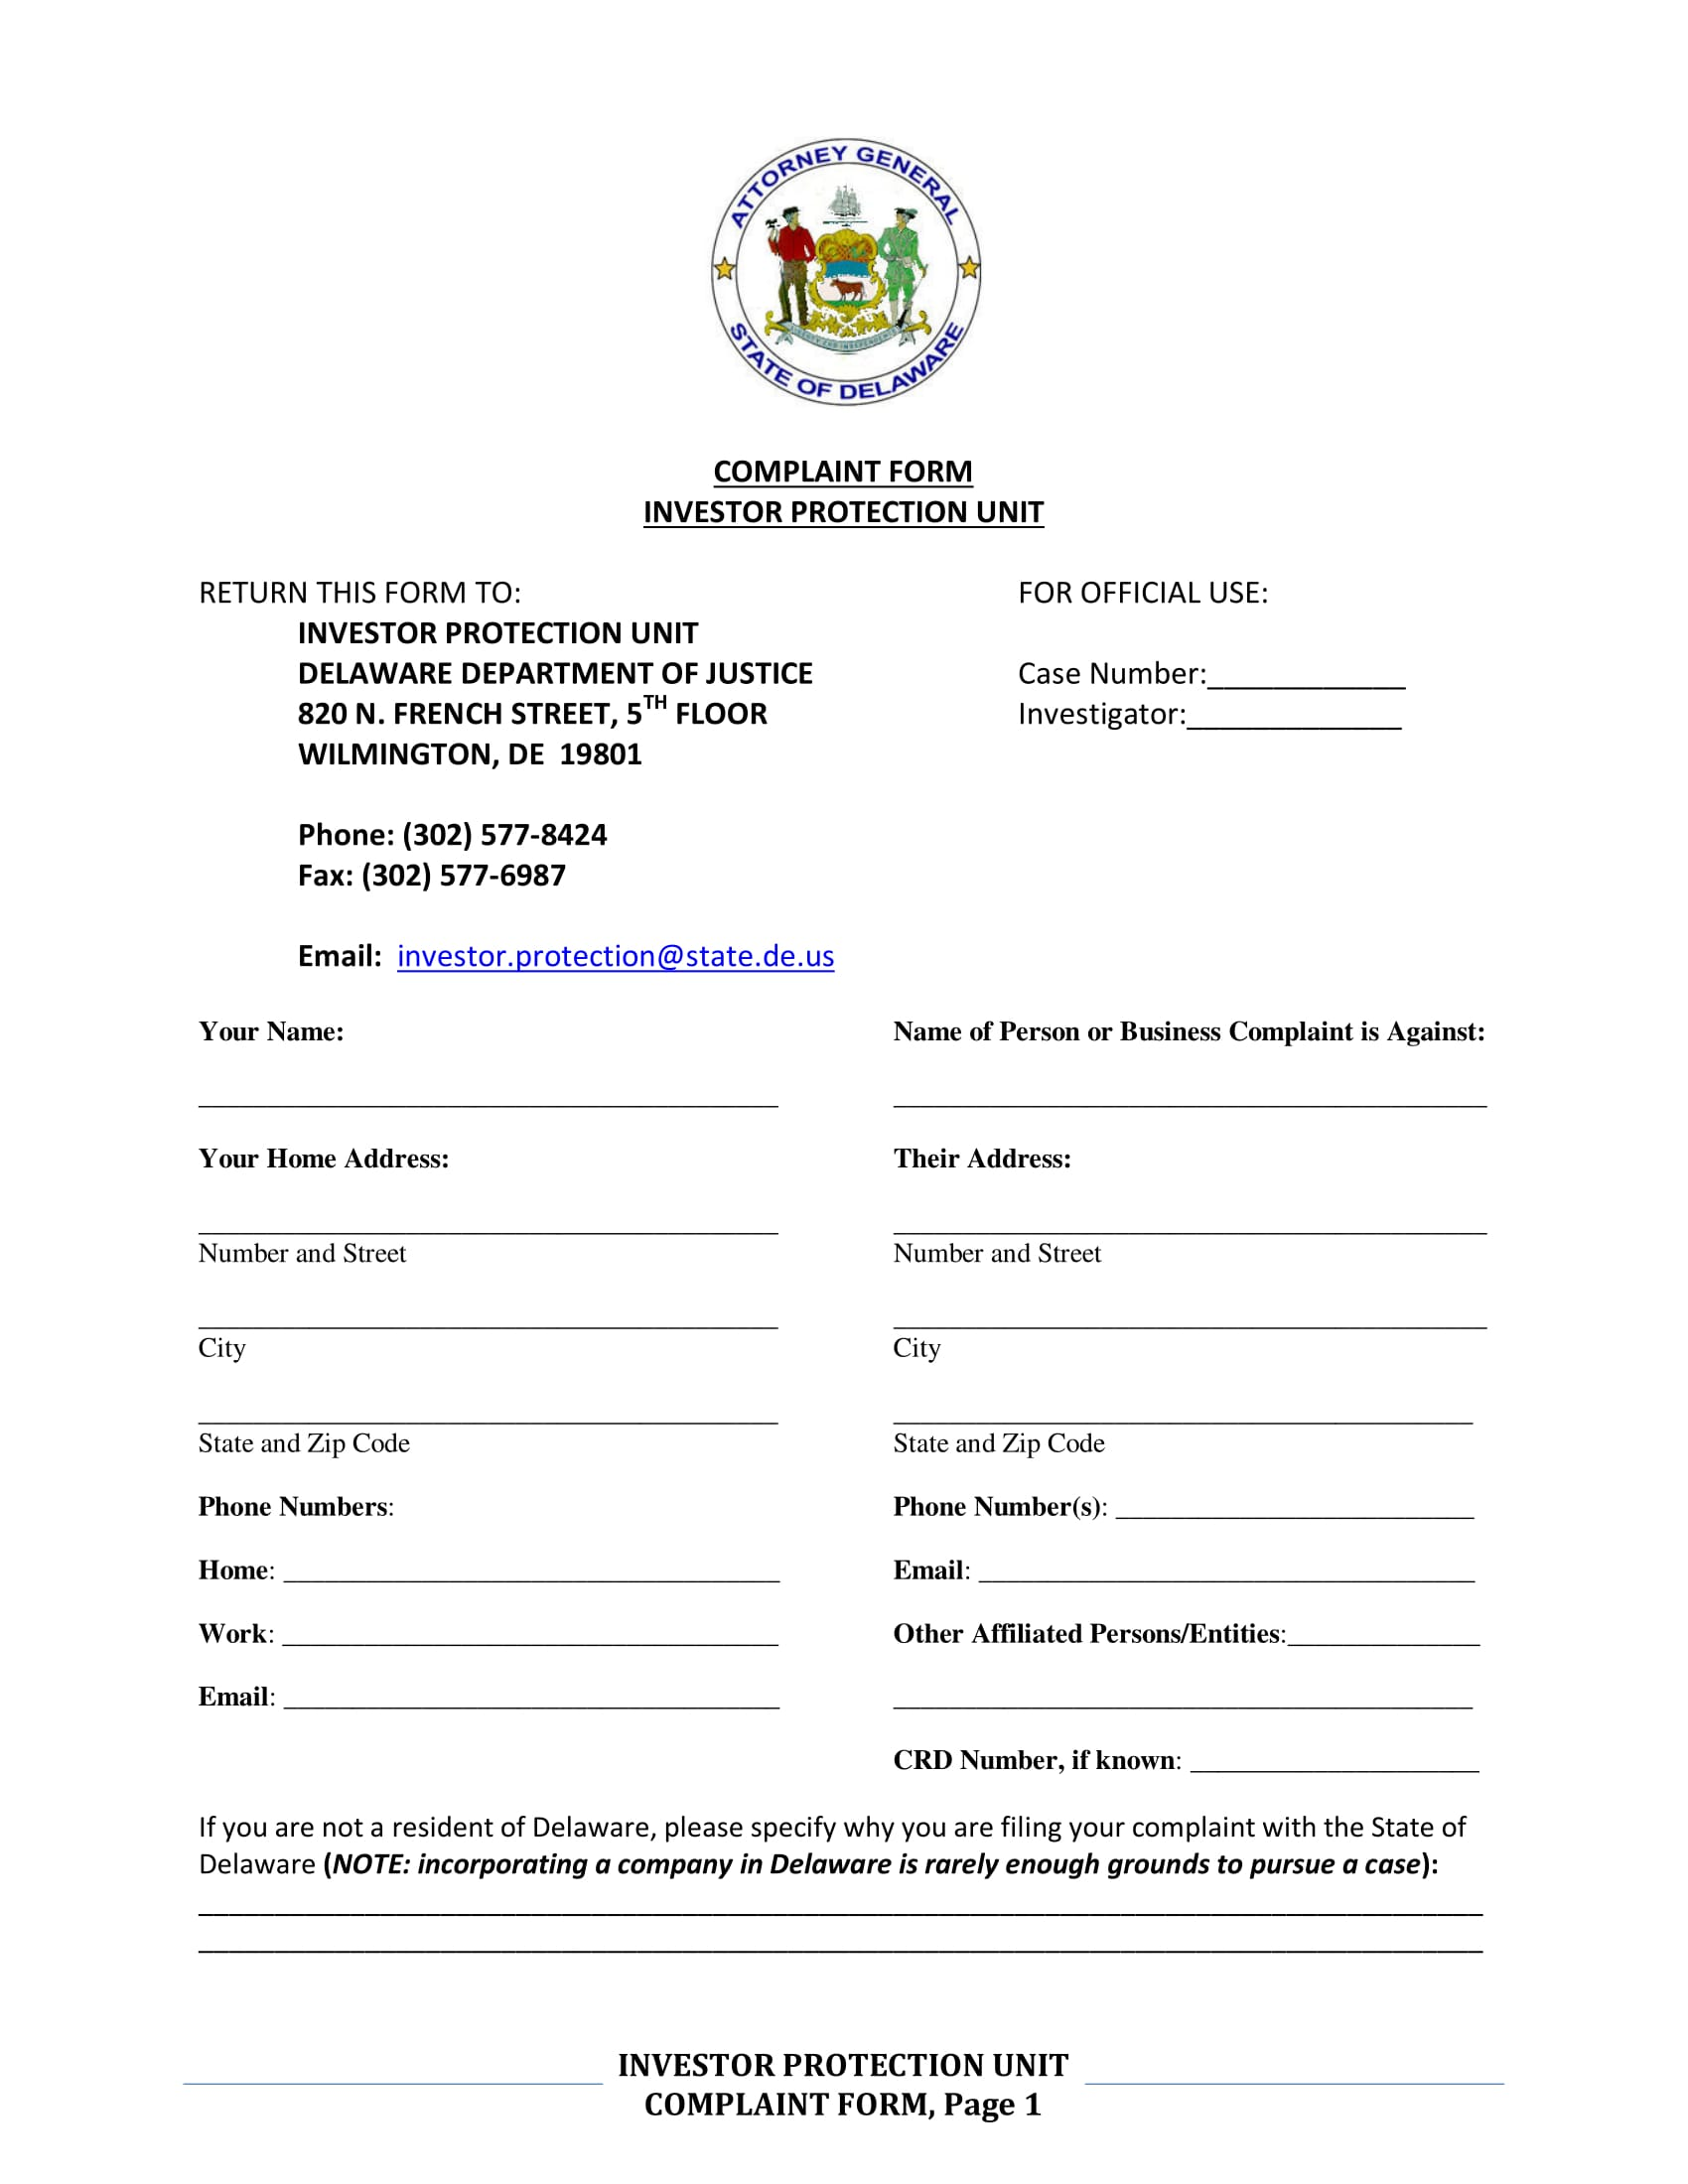 investor protection complaint form 1